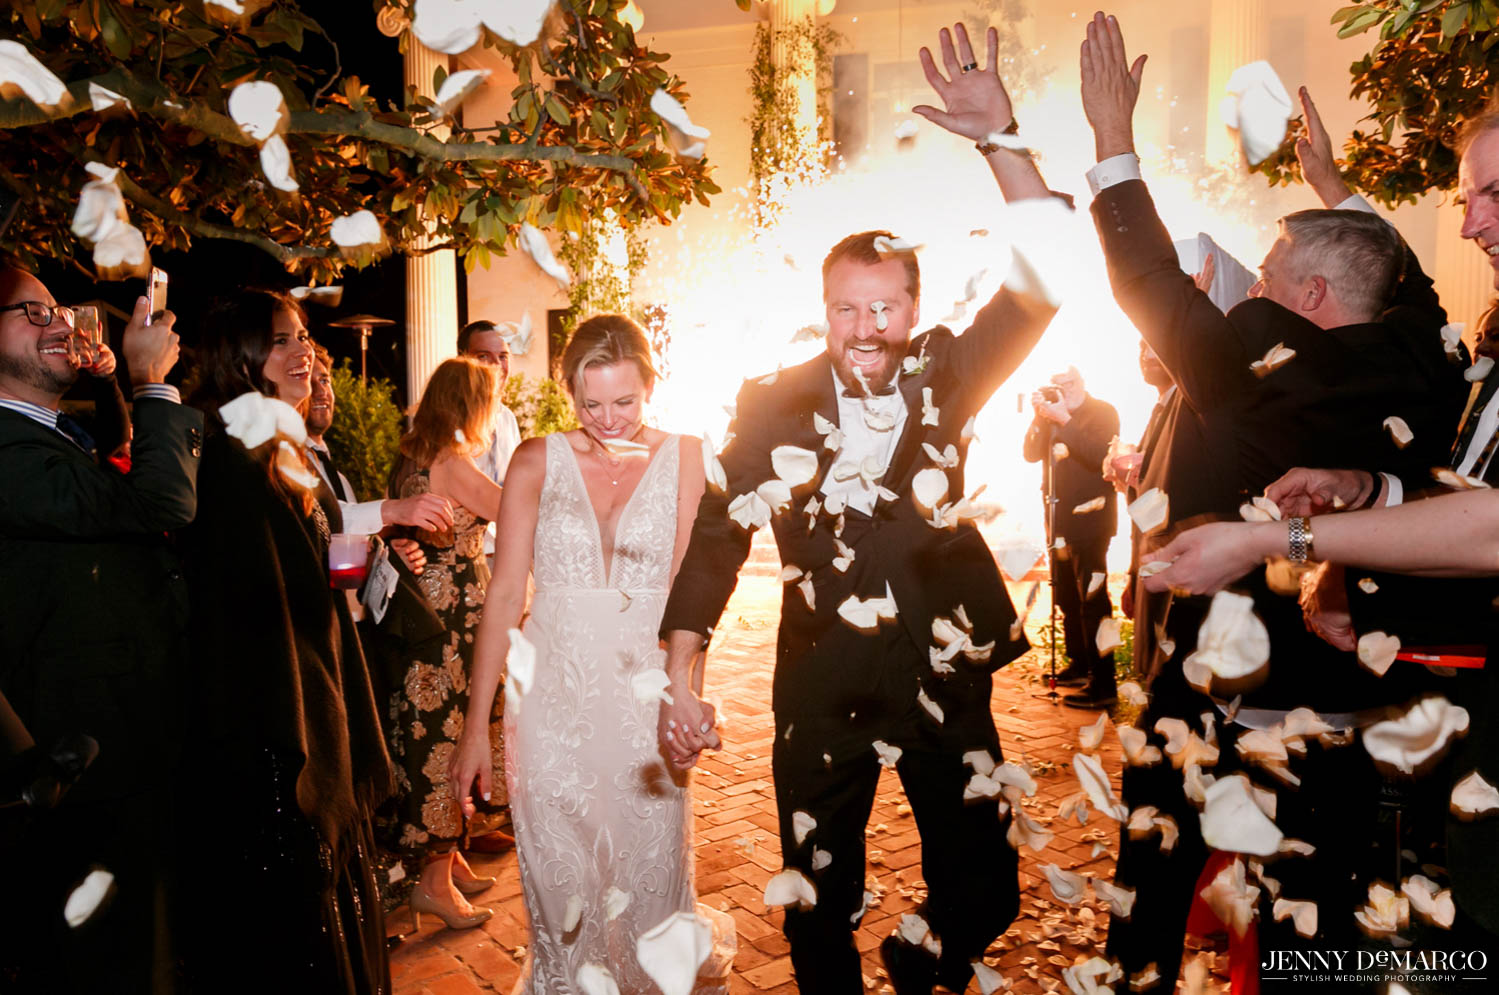 bride and groom making their final exit with roses and light explosion in background